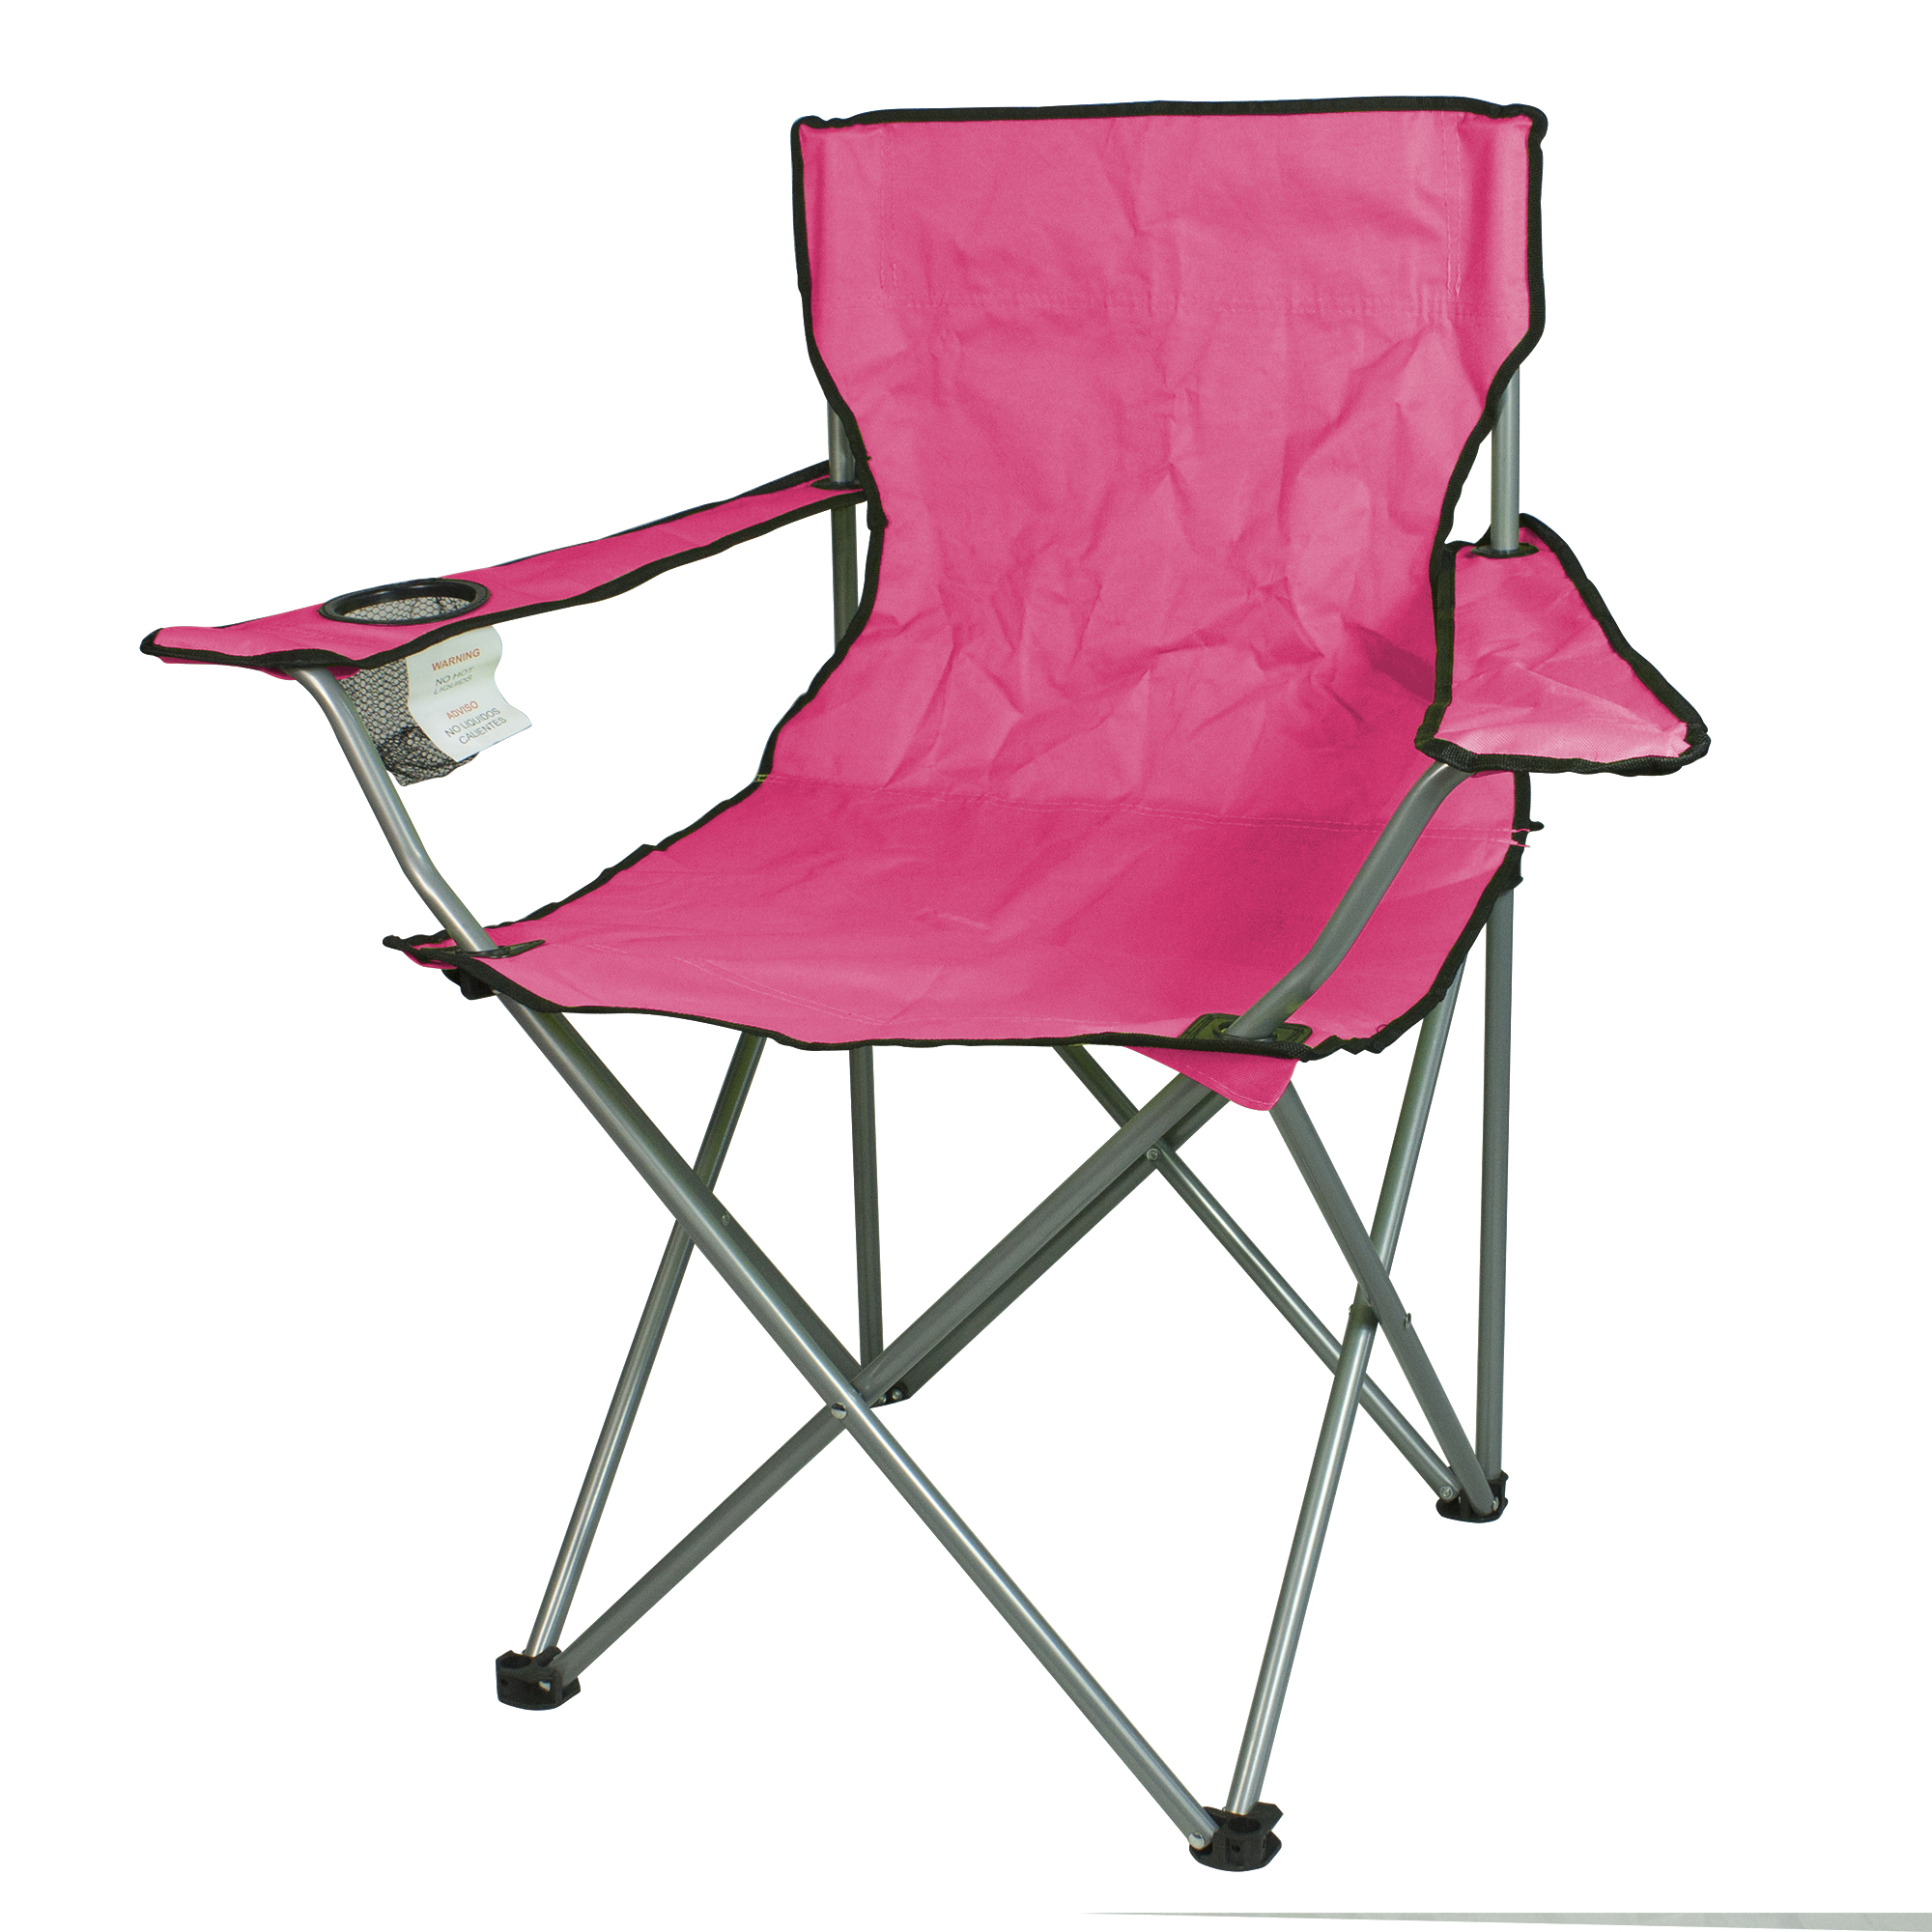 outdoor sports chairs plastic deck target northwest territory lightweight chair bright pink